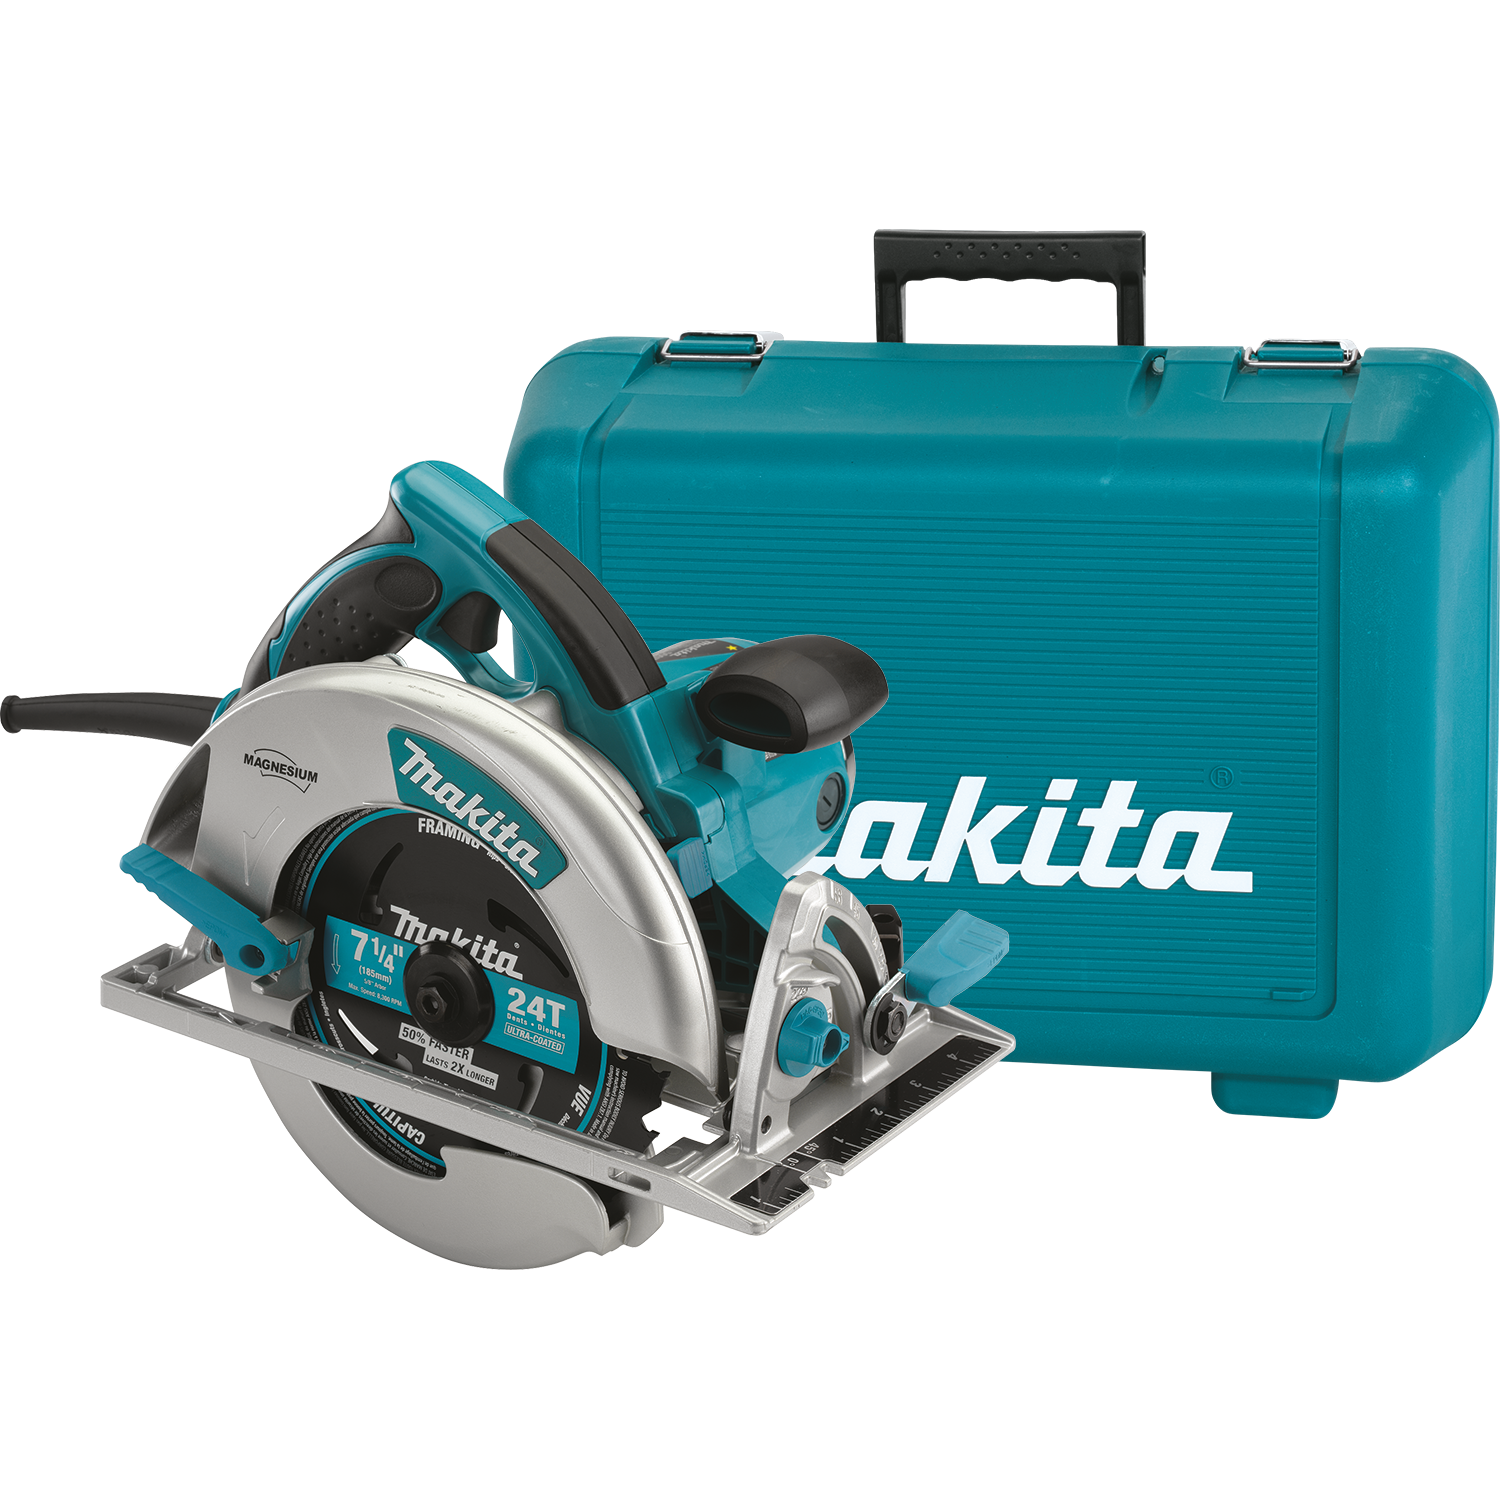 Makita usa product details 5007mg 5007mg greentooth Images